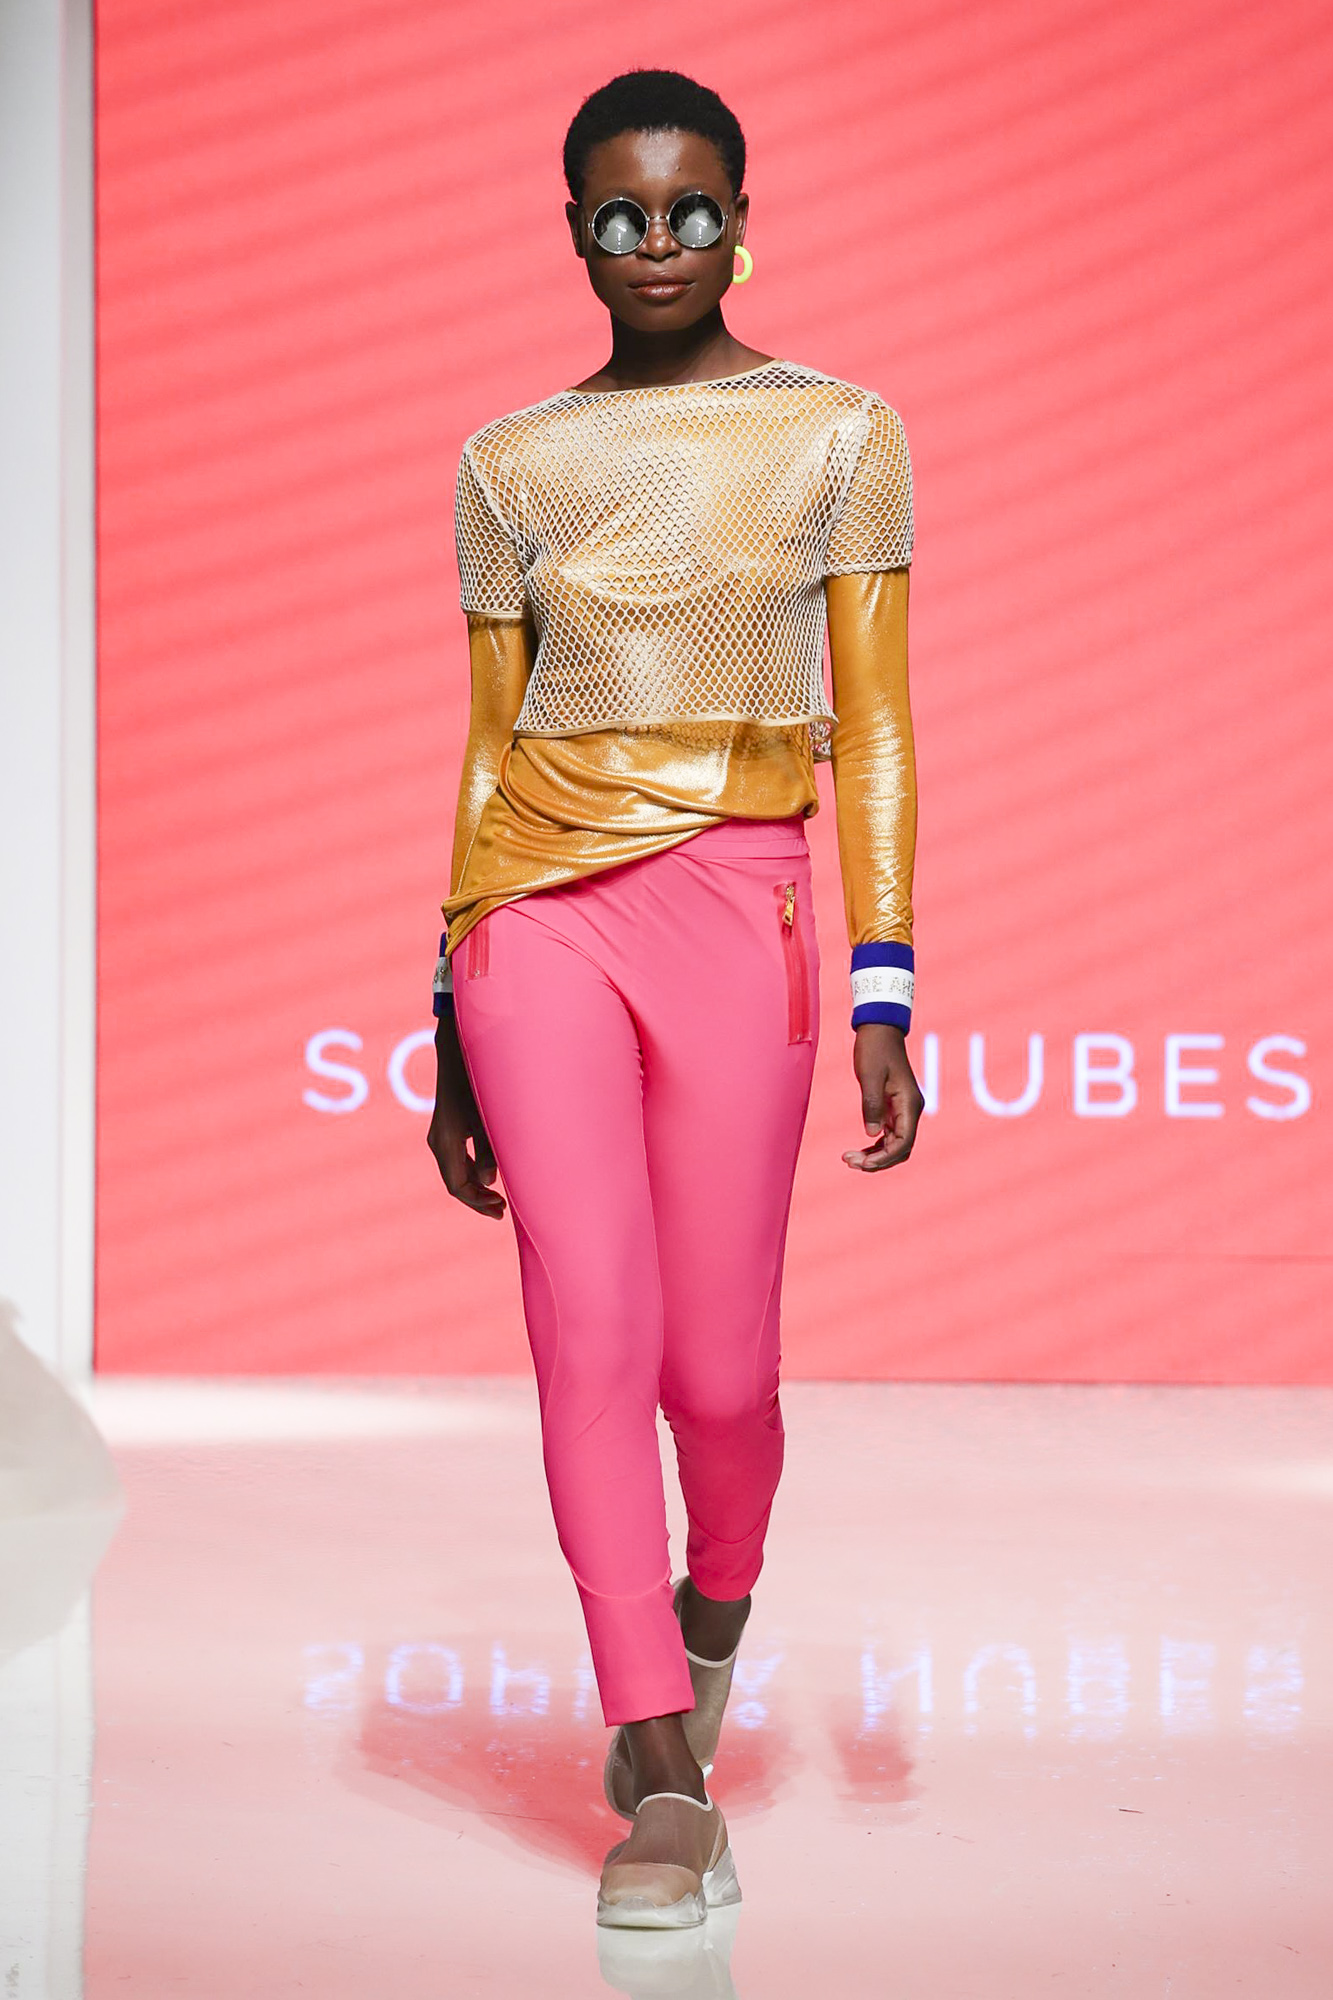 Sophia Nubes fashion show, Arab Fashion Week collection Spring Summer 2020 in Dubai